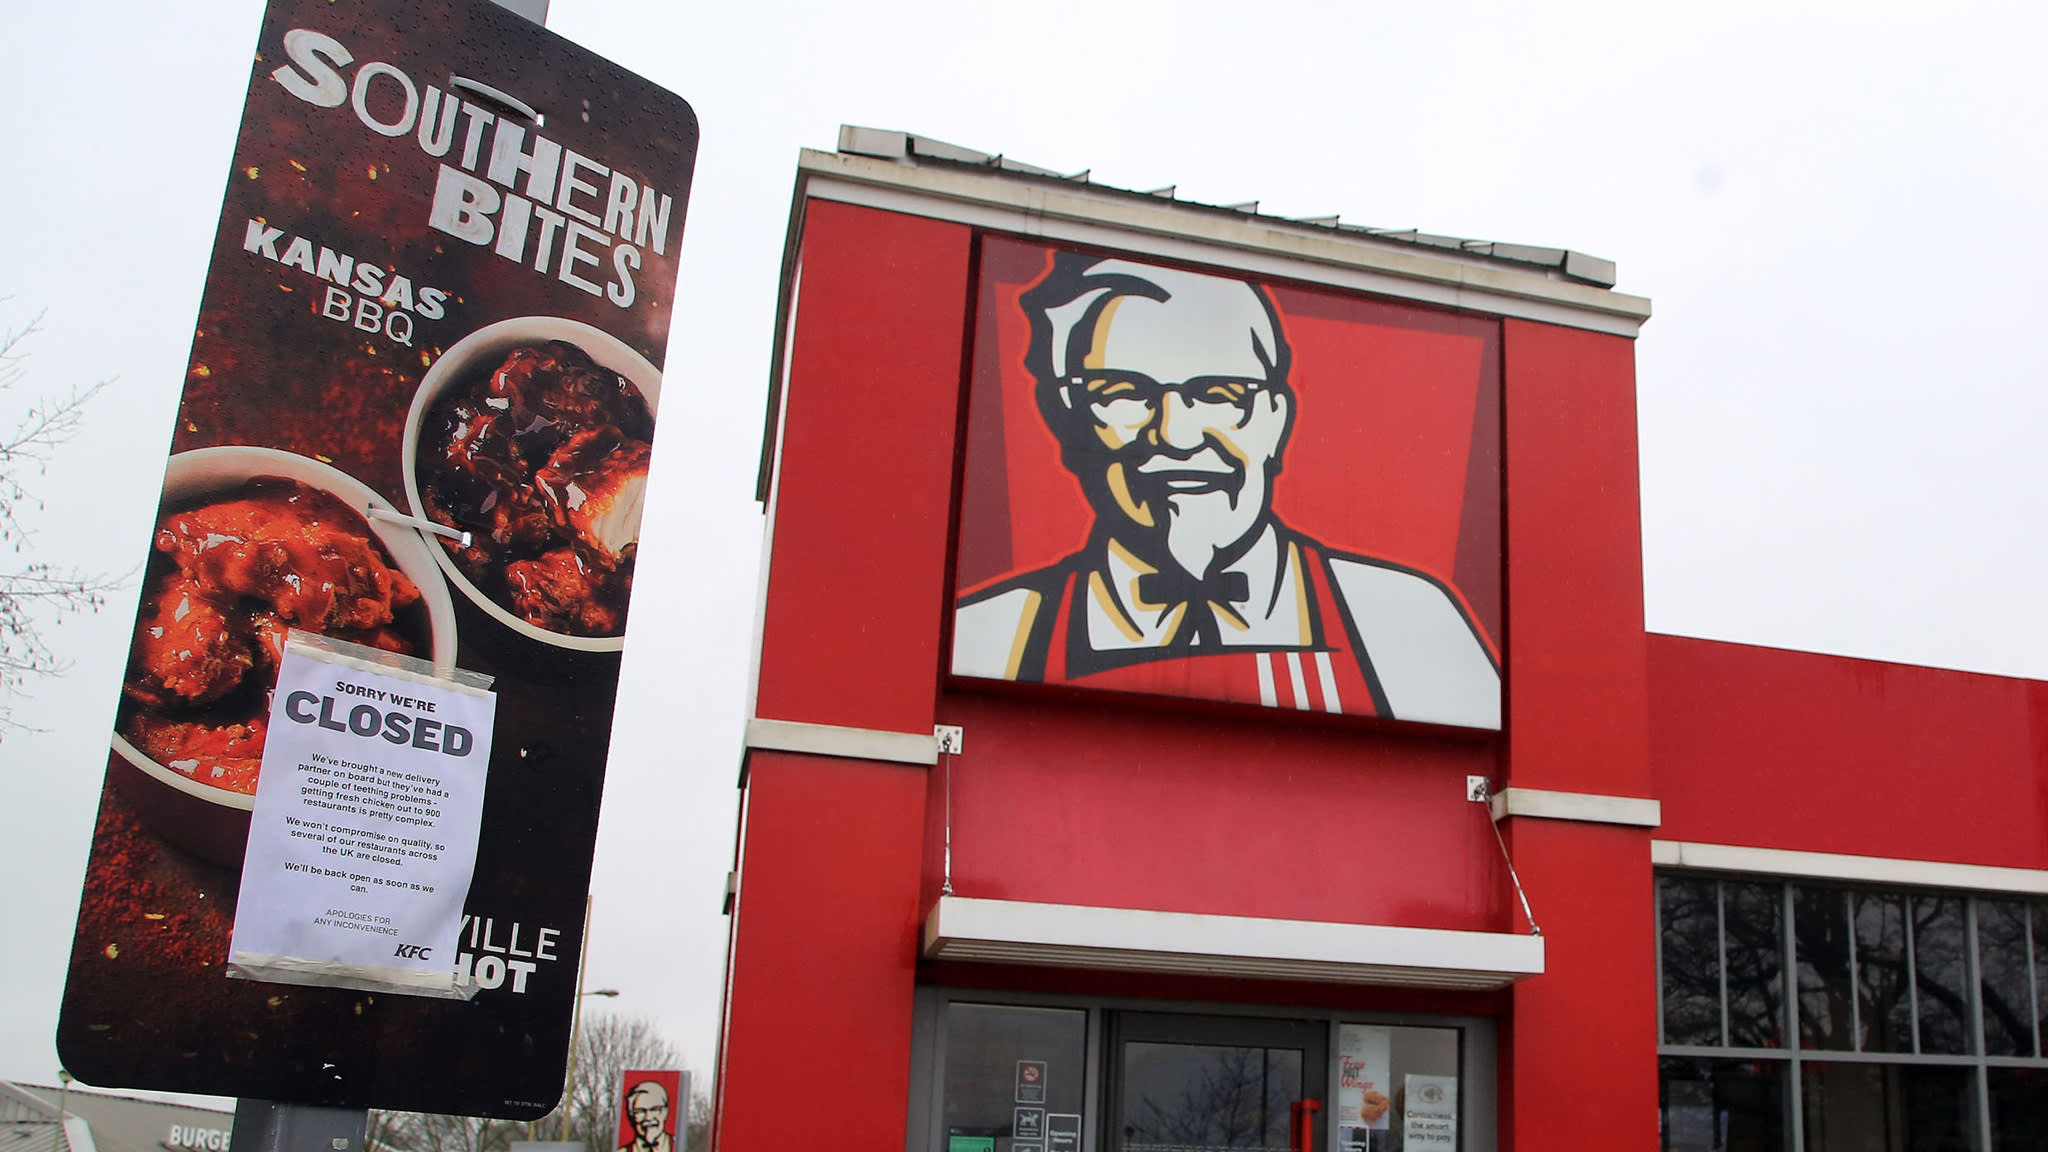 Chicken shortage shuts majority of KFC branches in UK